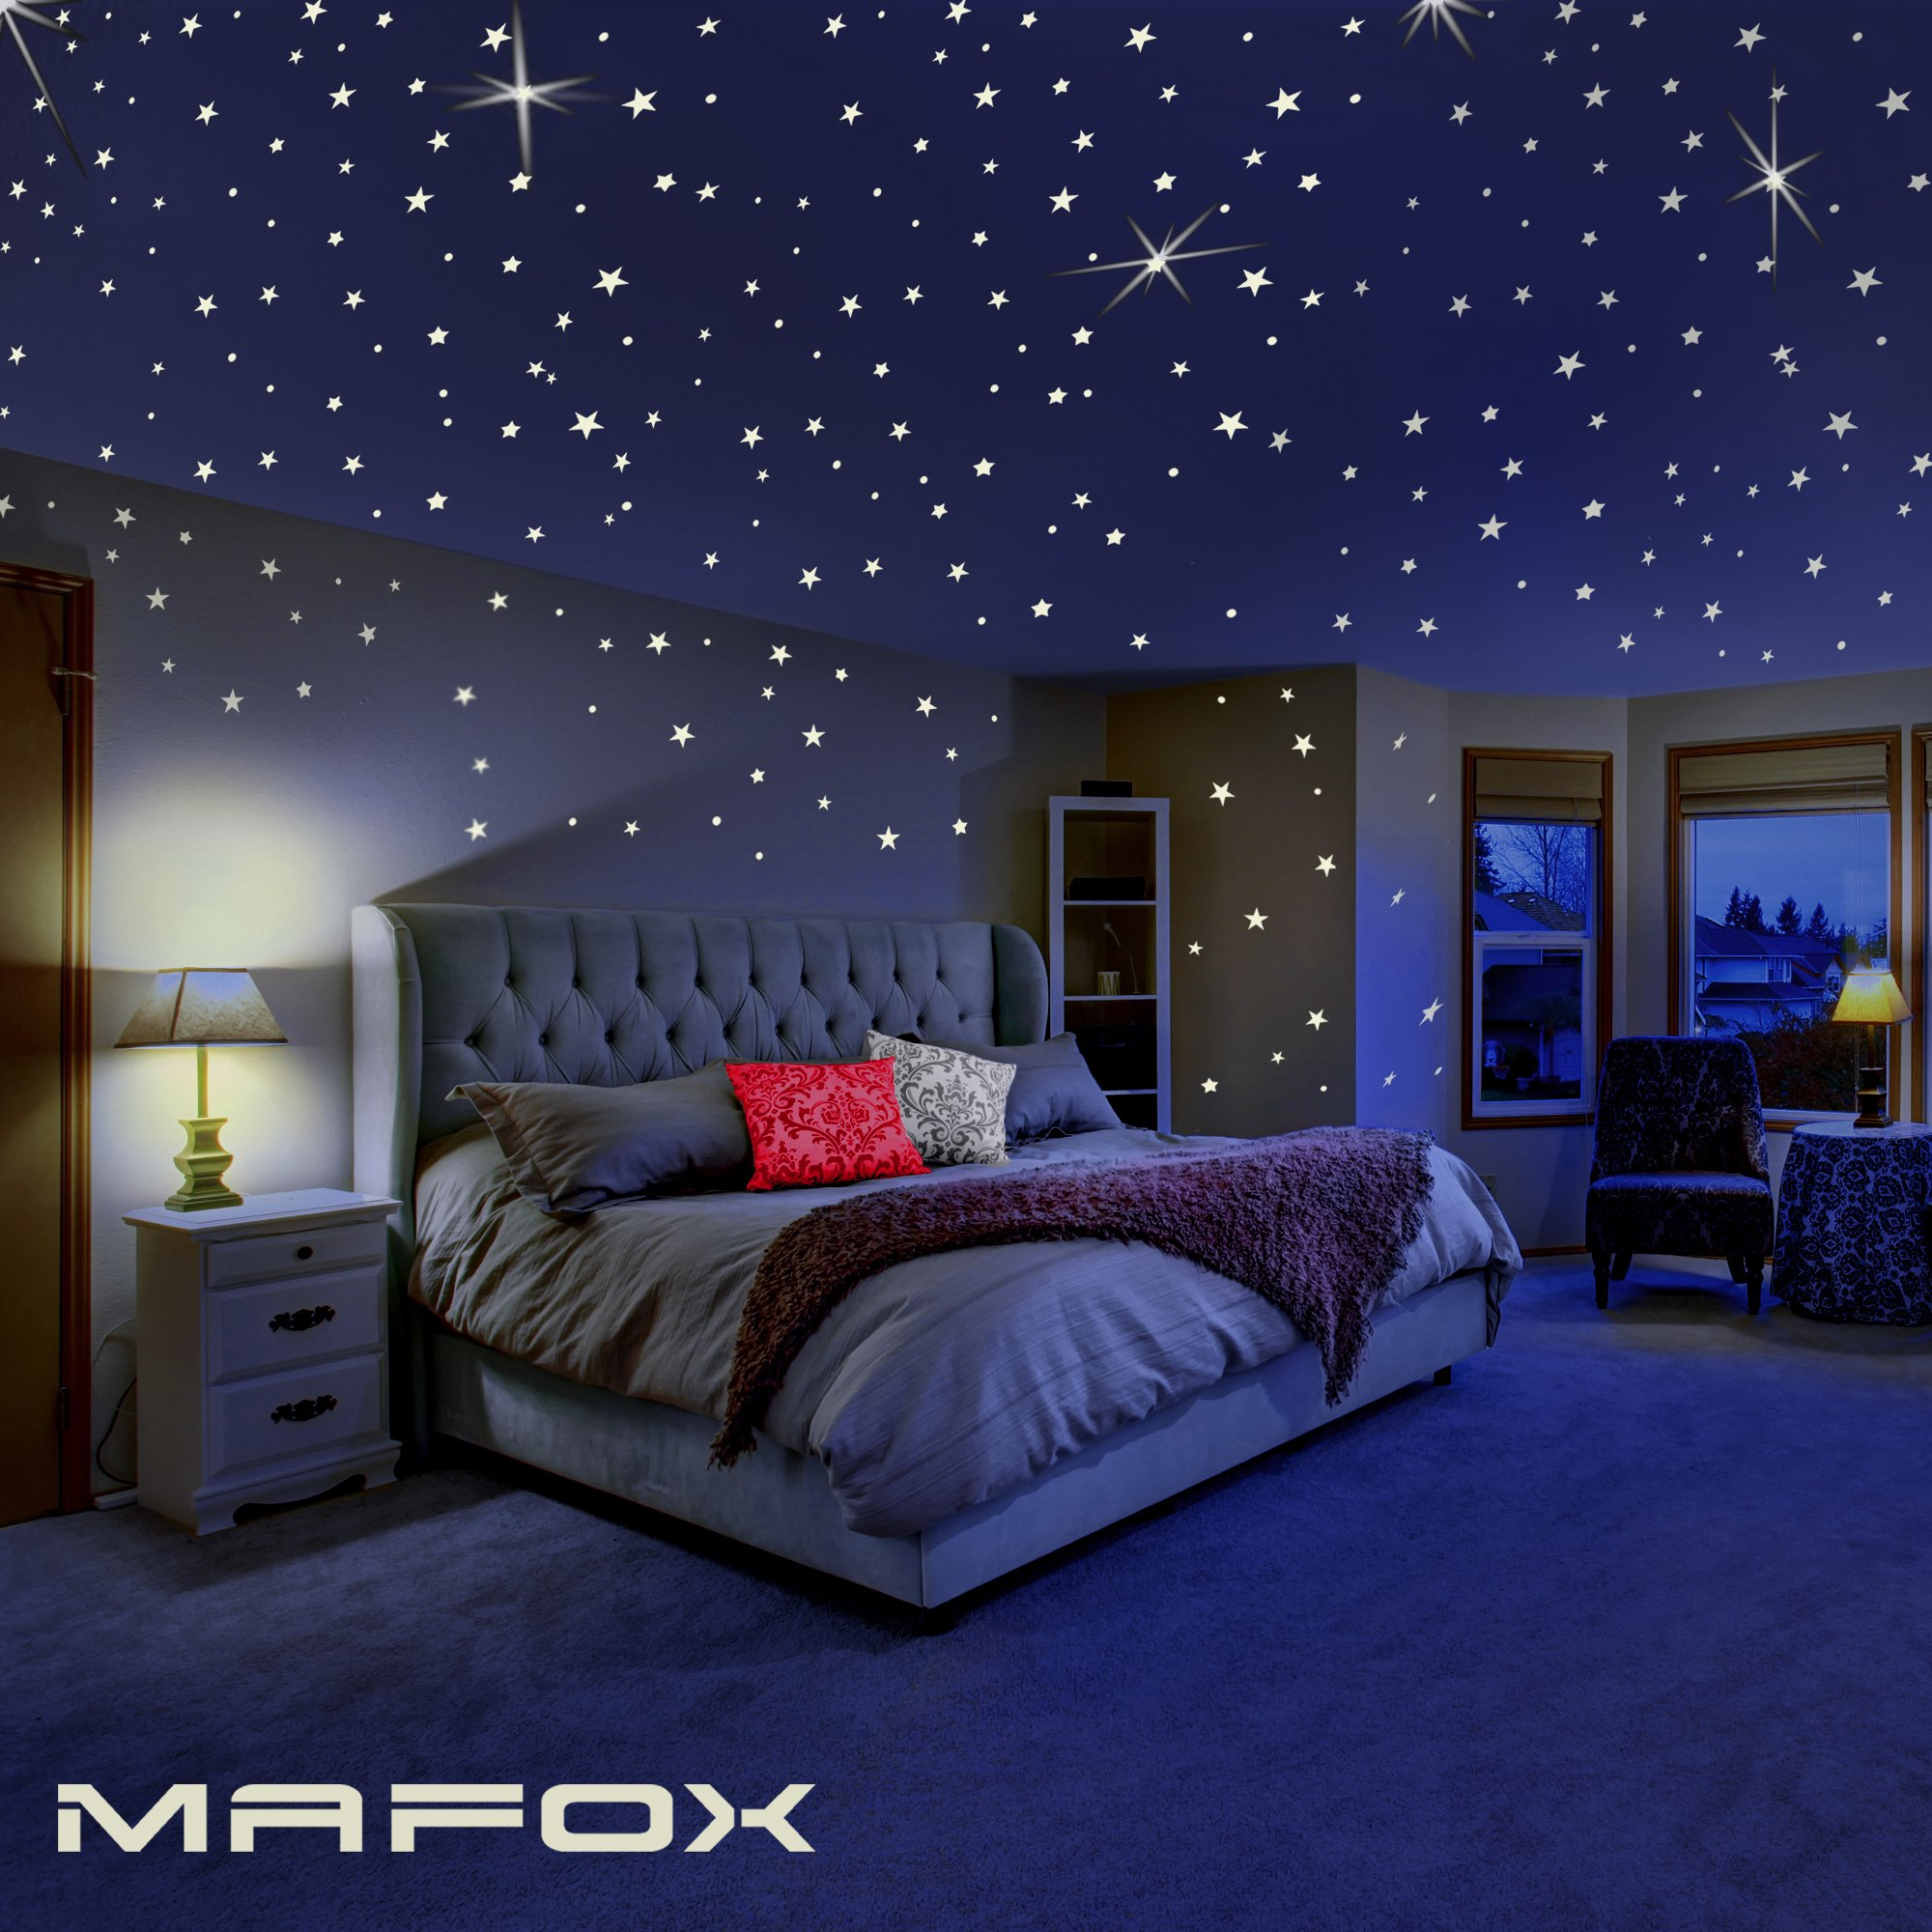 MAFOX Glow In The Dark Stars For Ceiling Or Wall Stickers